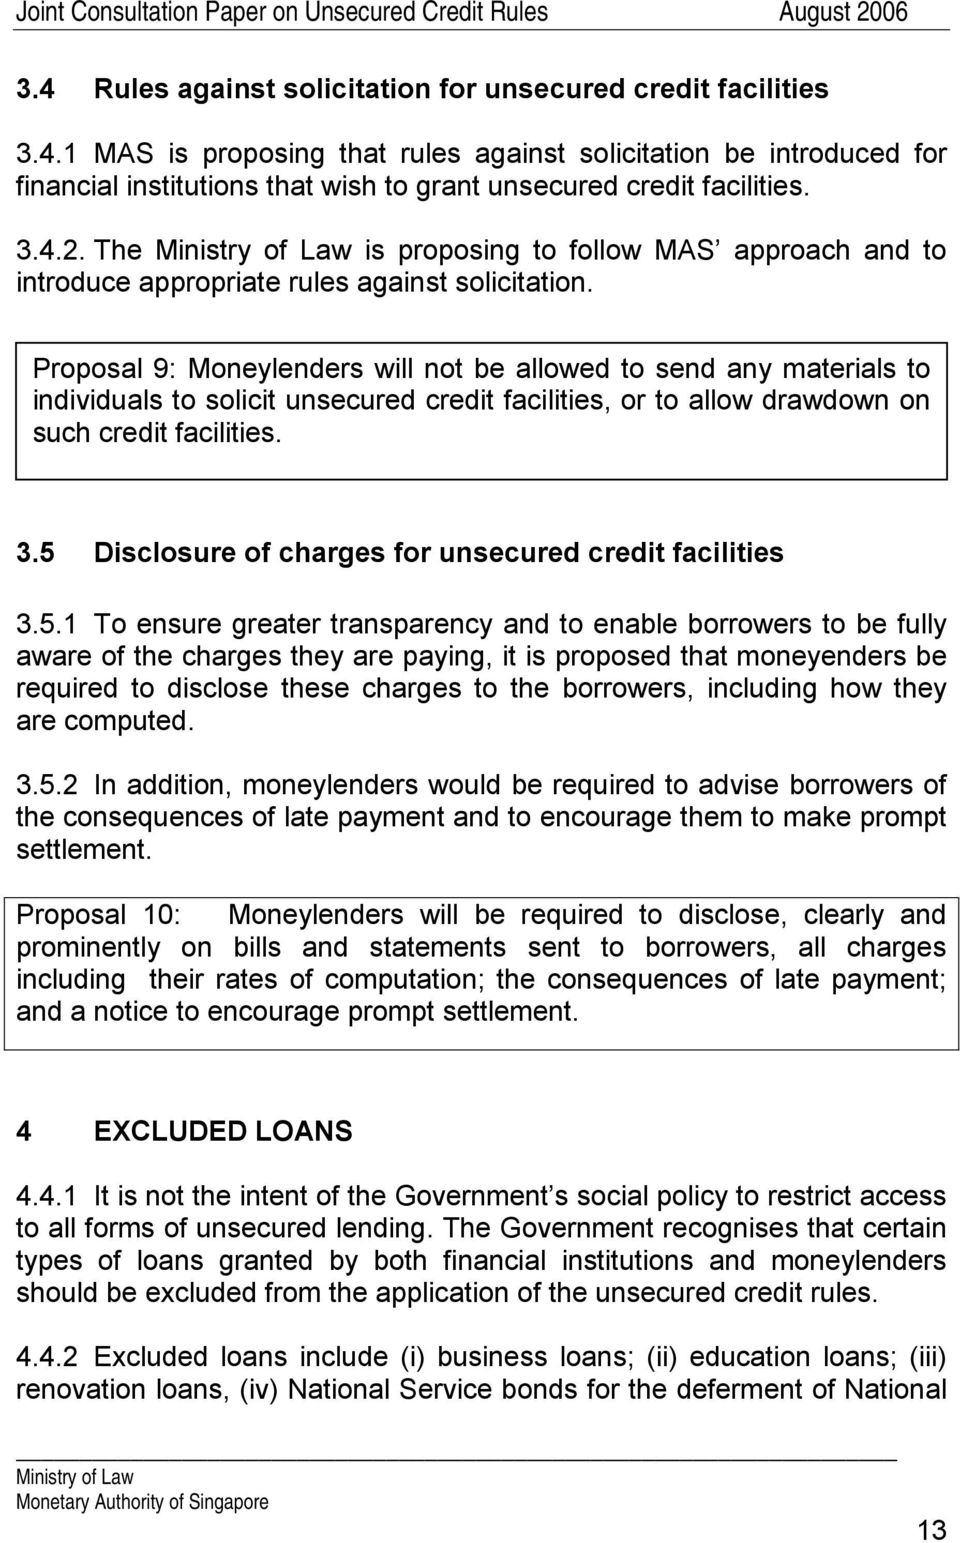 Proposal 9: Moneylenders will not be allowed to send any materials to individuals to solicit unsecured credit facilities, or to allow drawdown on such credit facilities. 3.